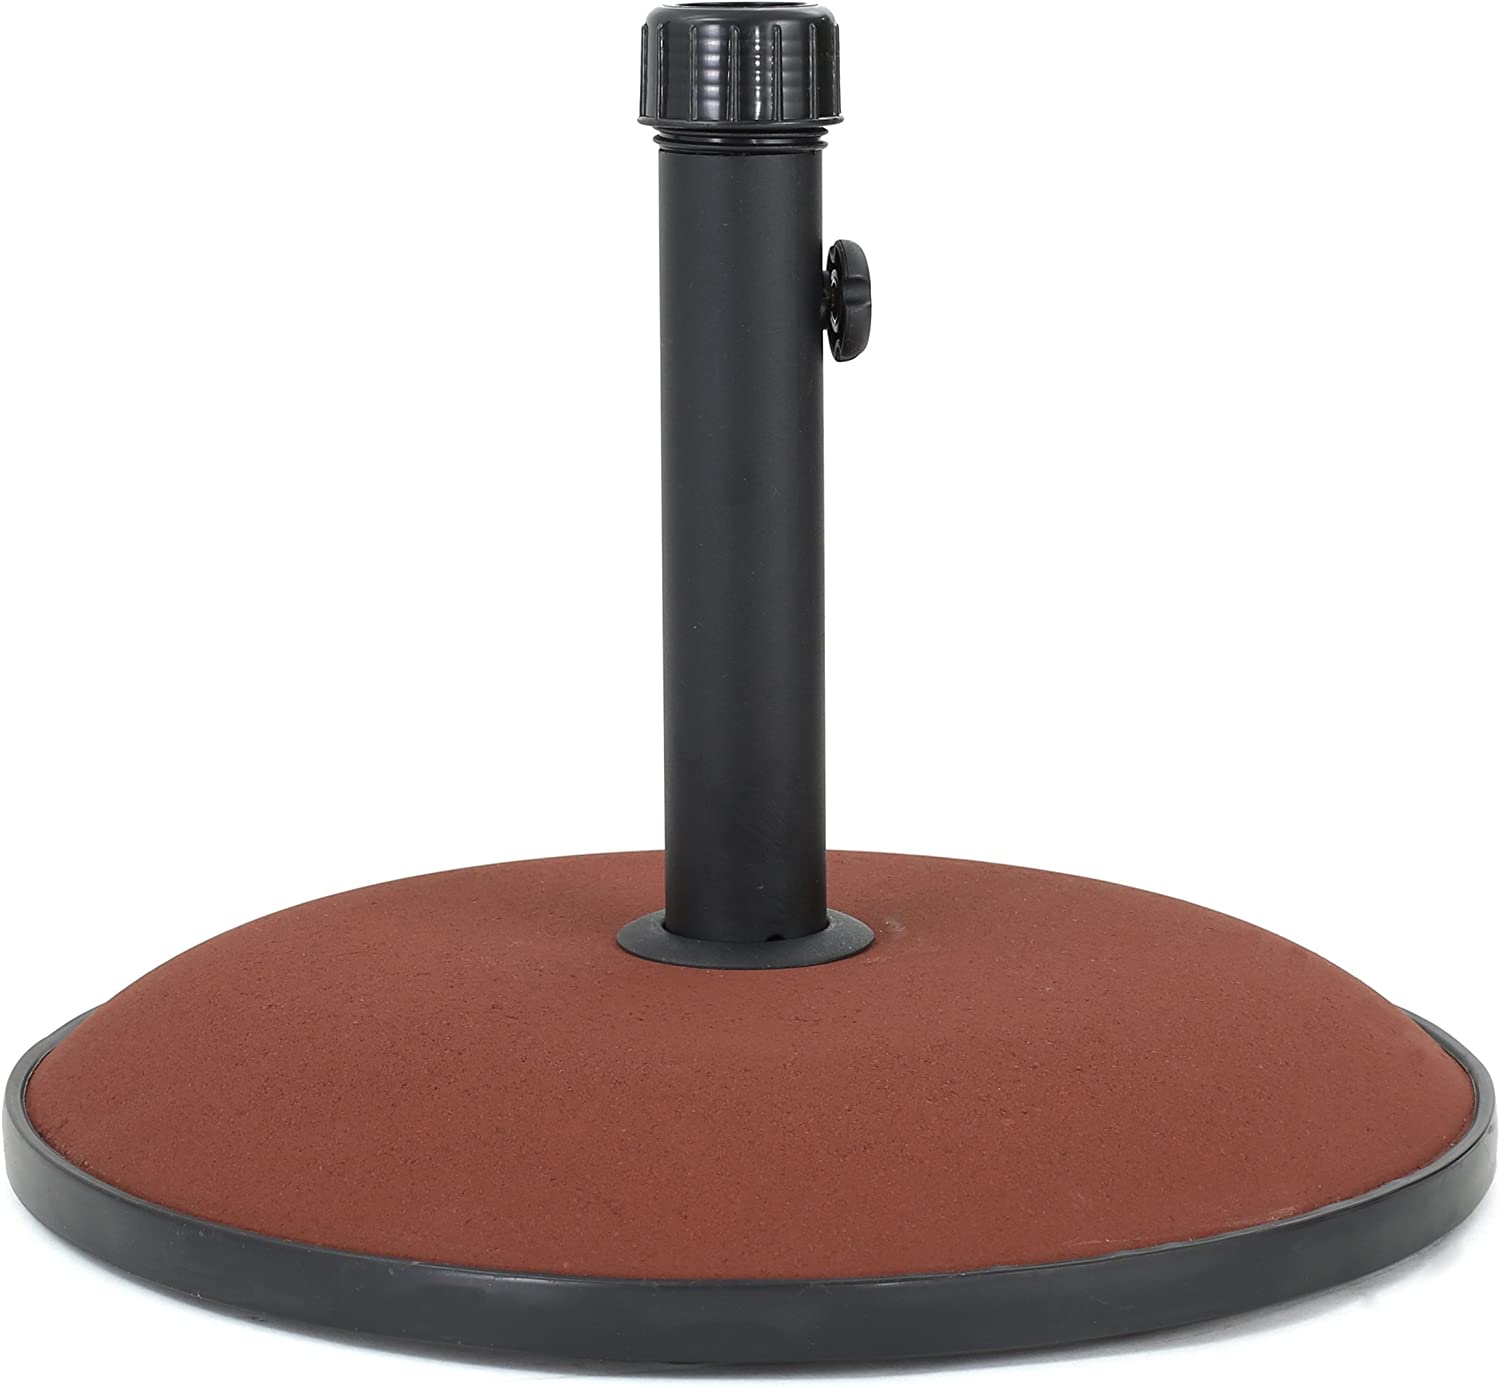 Christopher Knight Home 300407 Stoic 33lbs Concrete and Iron Umbrella Base Brownish Red